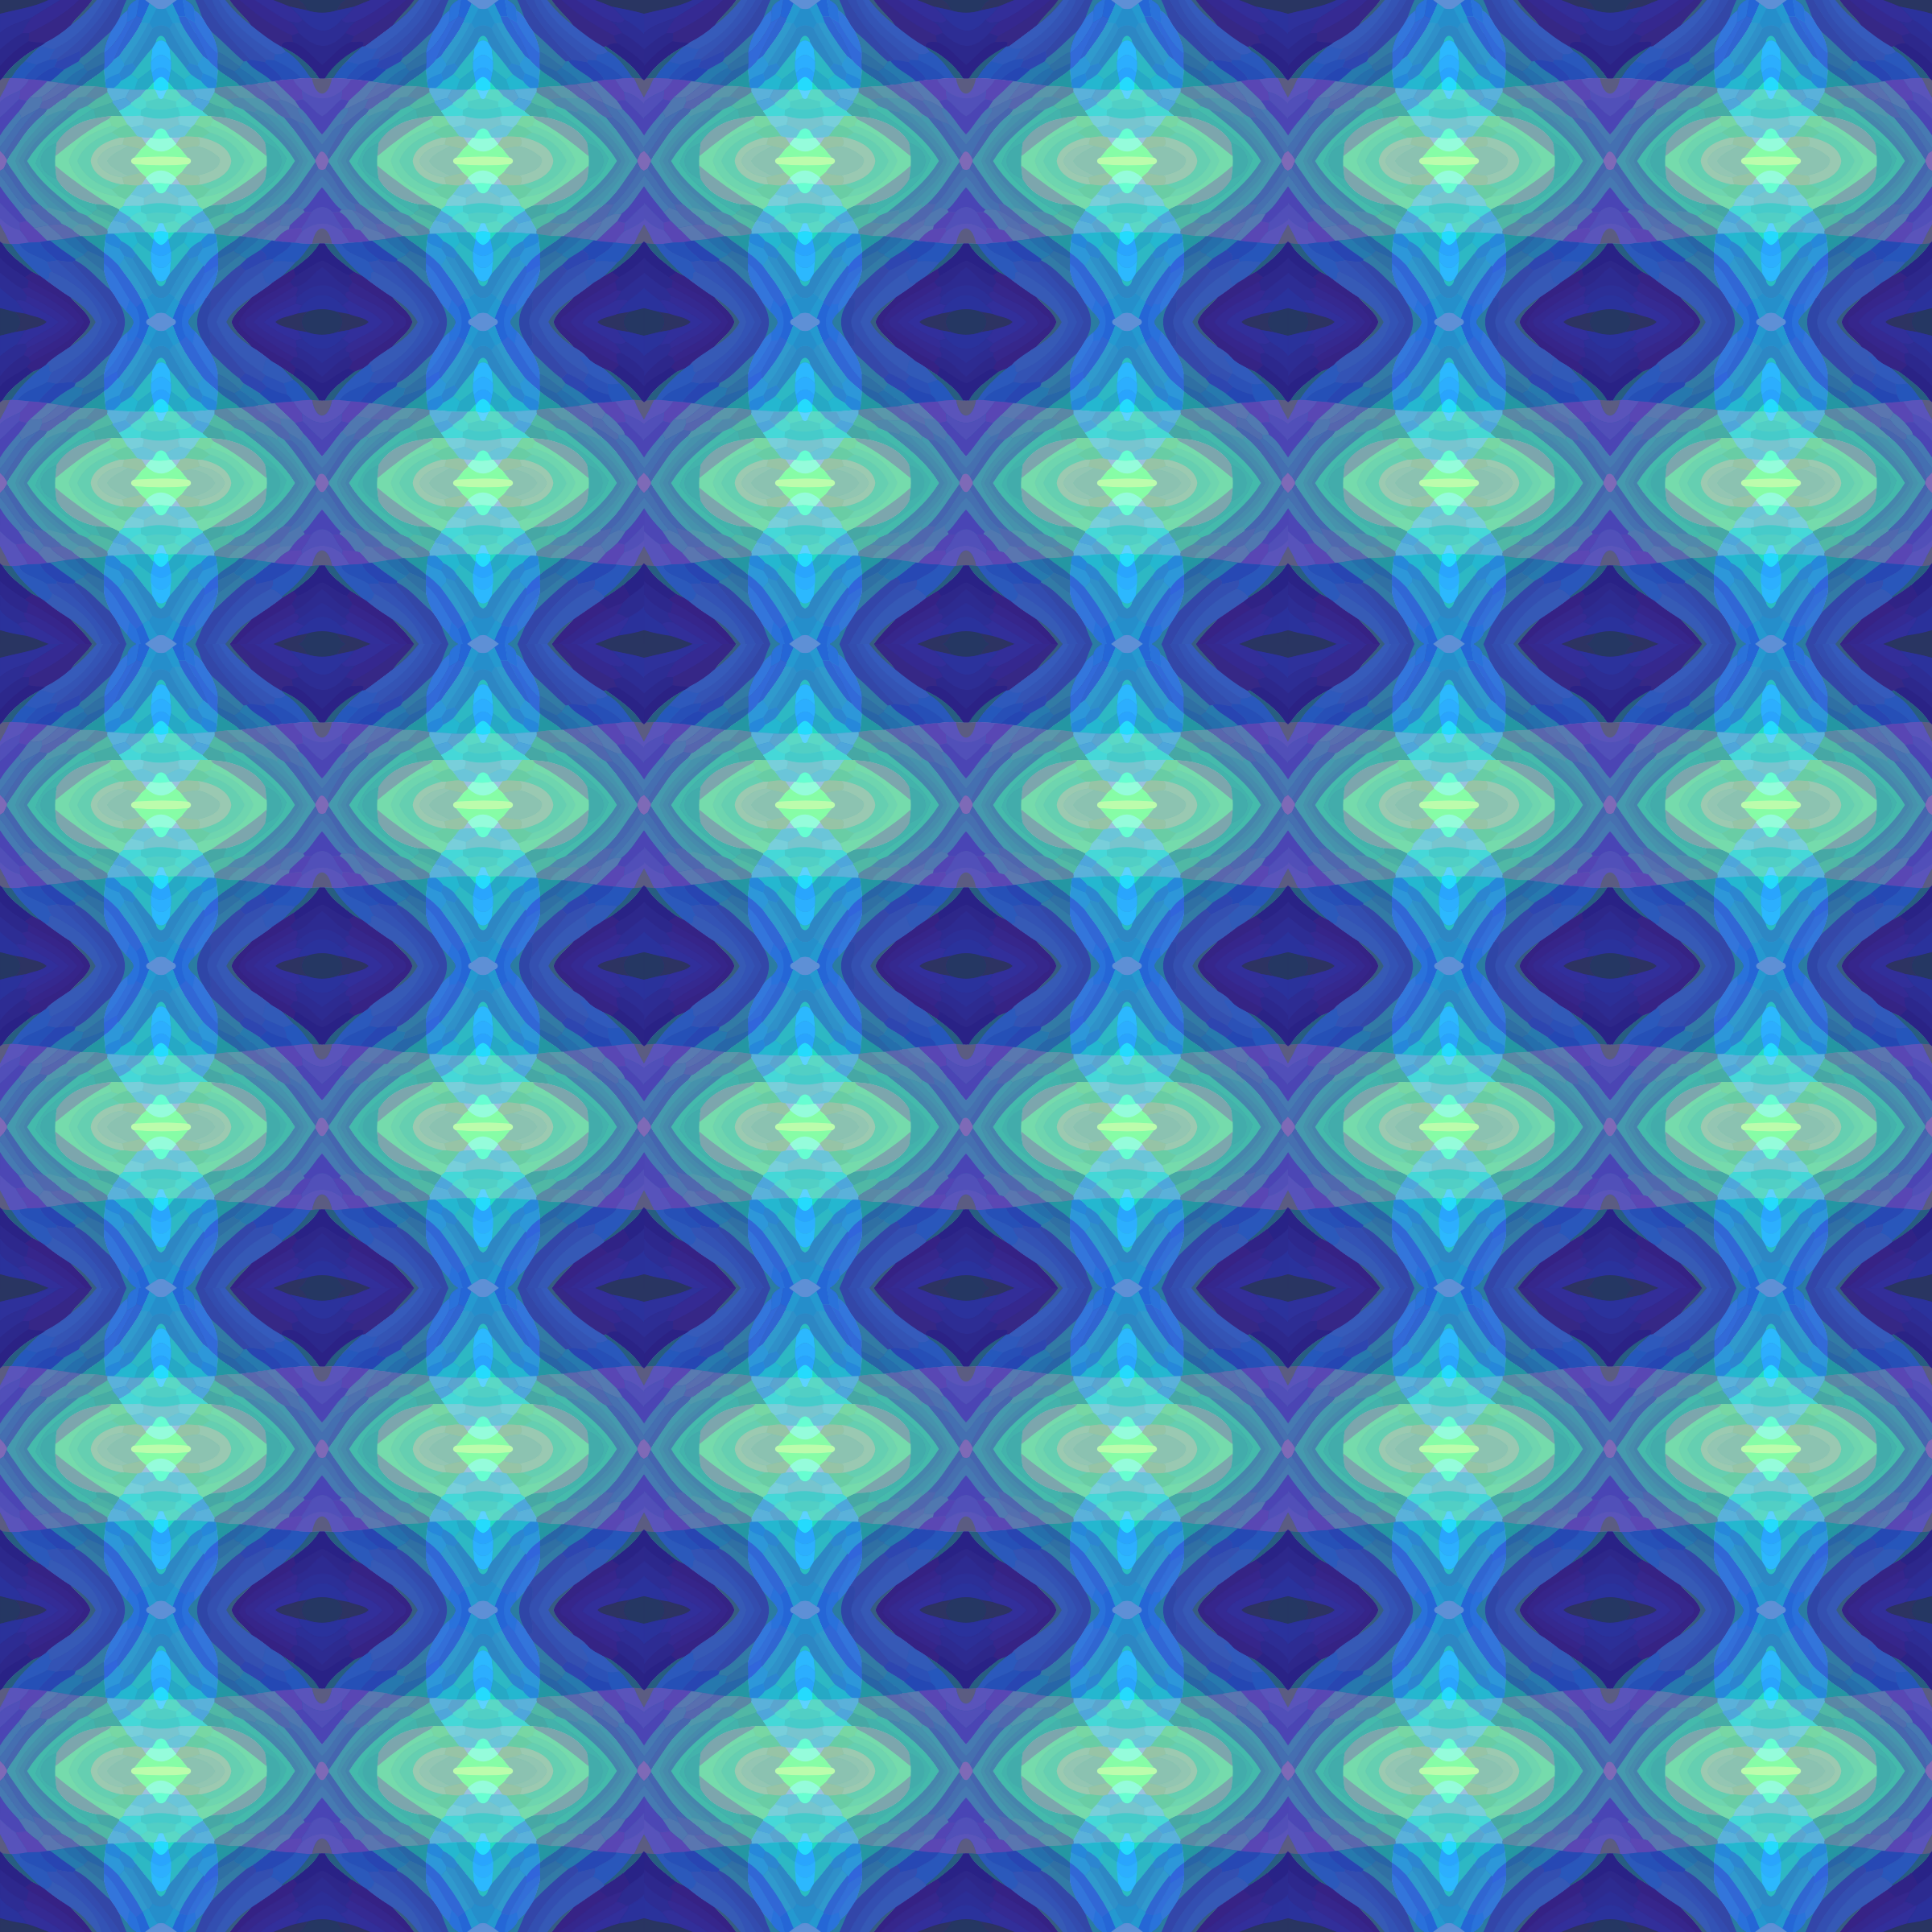 Background pattern 225 (colour 5) by Firkin